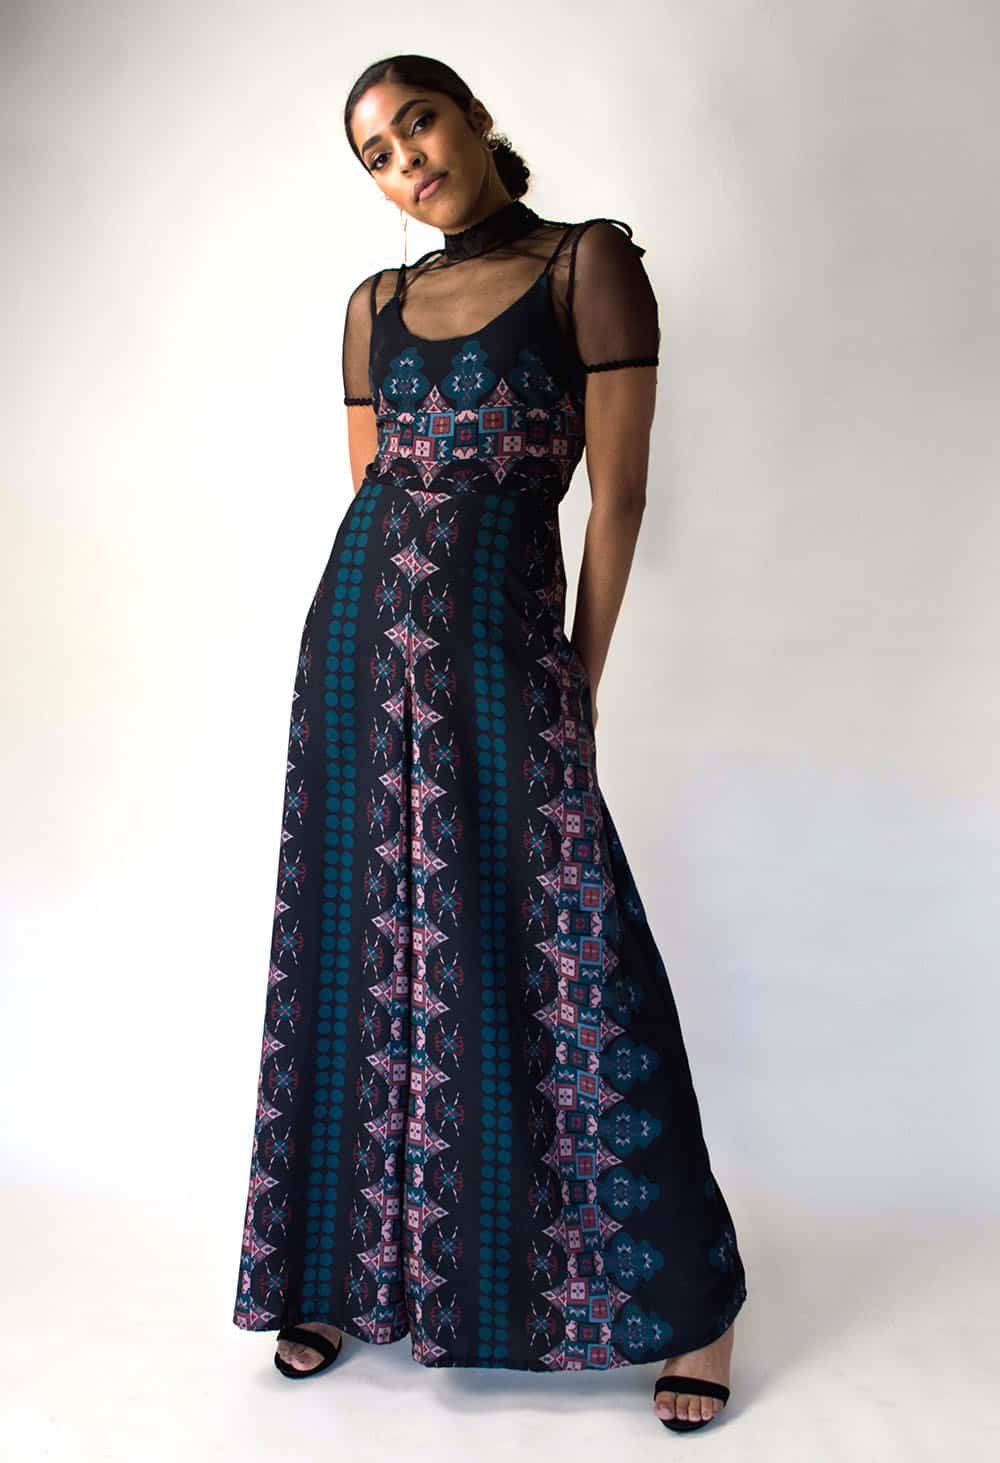 A floor length dress from R'bonney Gabriel's collection